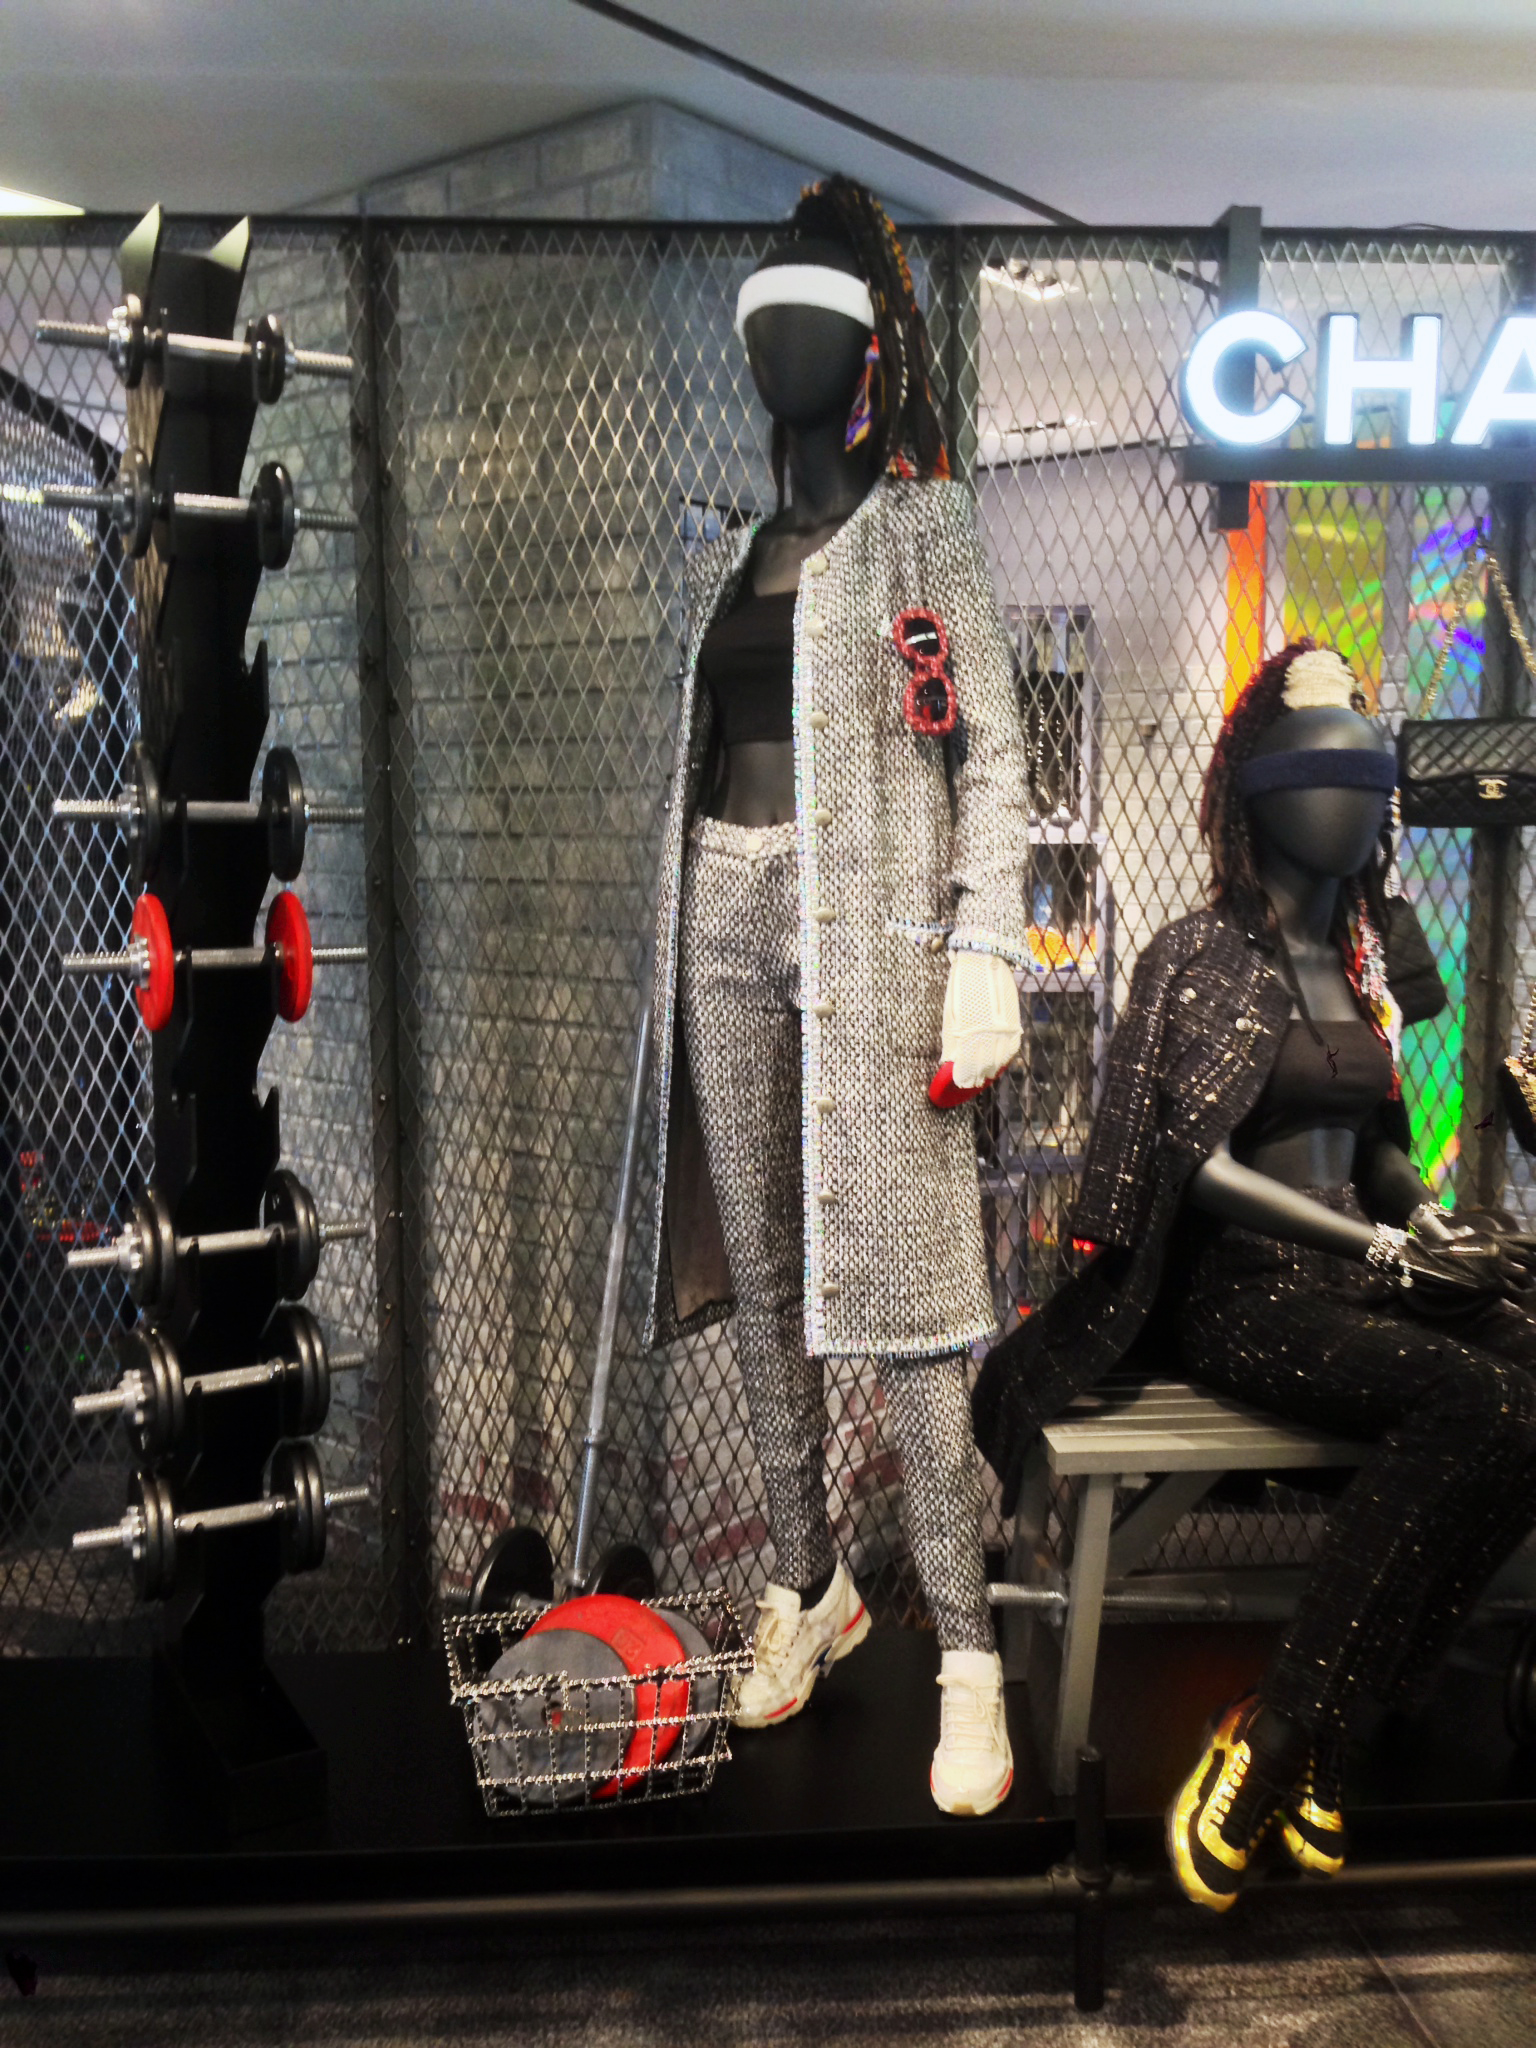 Chanel Pop-Up on 5F @ Bergdorf Goodman - Photo by: Lauren Caron